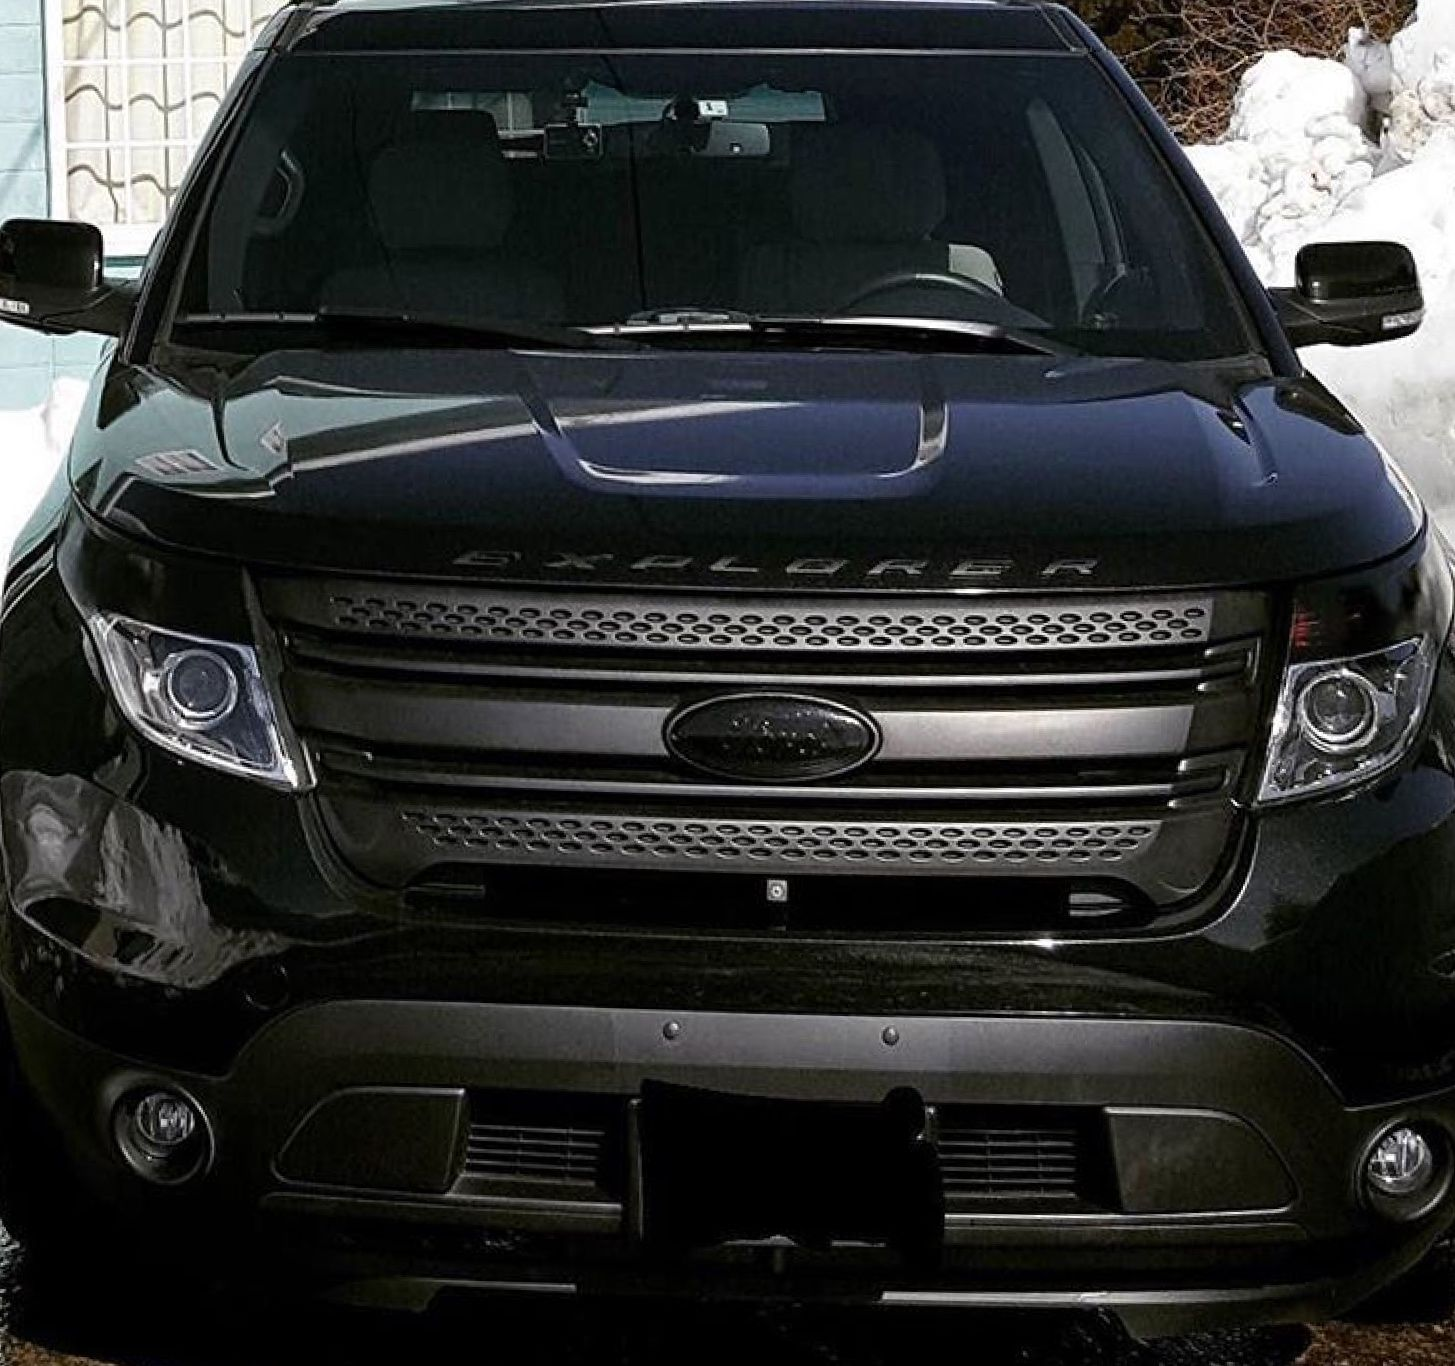 Blacked Out Explorer Ford explorer sport, Ford explorer